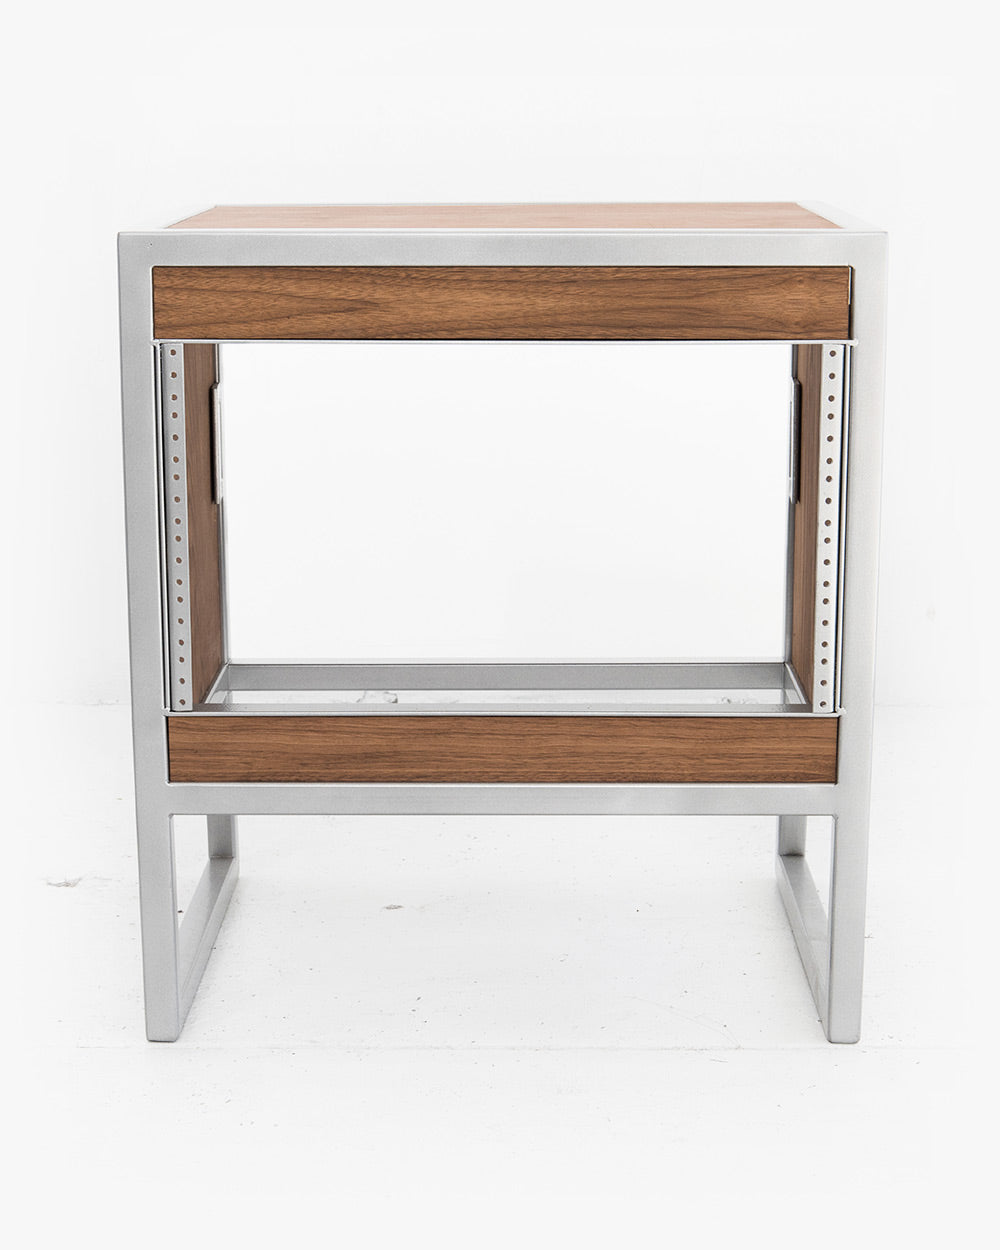 6U Studio Rack (Walnut / Brushed Steel)